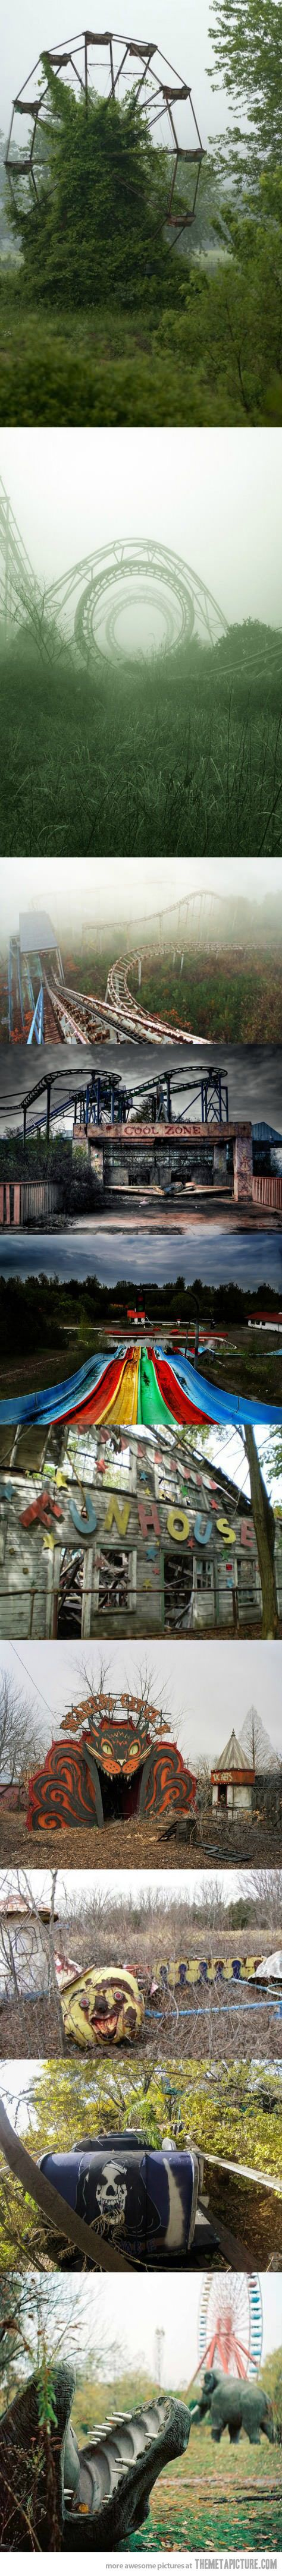 Creepy Photos of Abandoned Amusement Parks